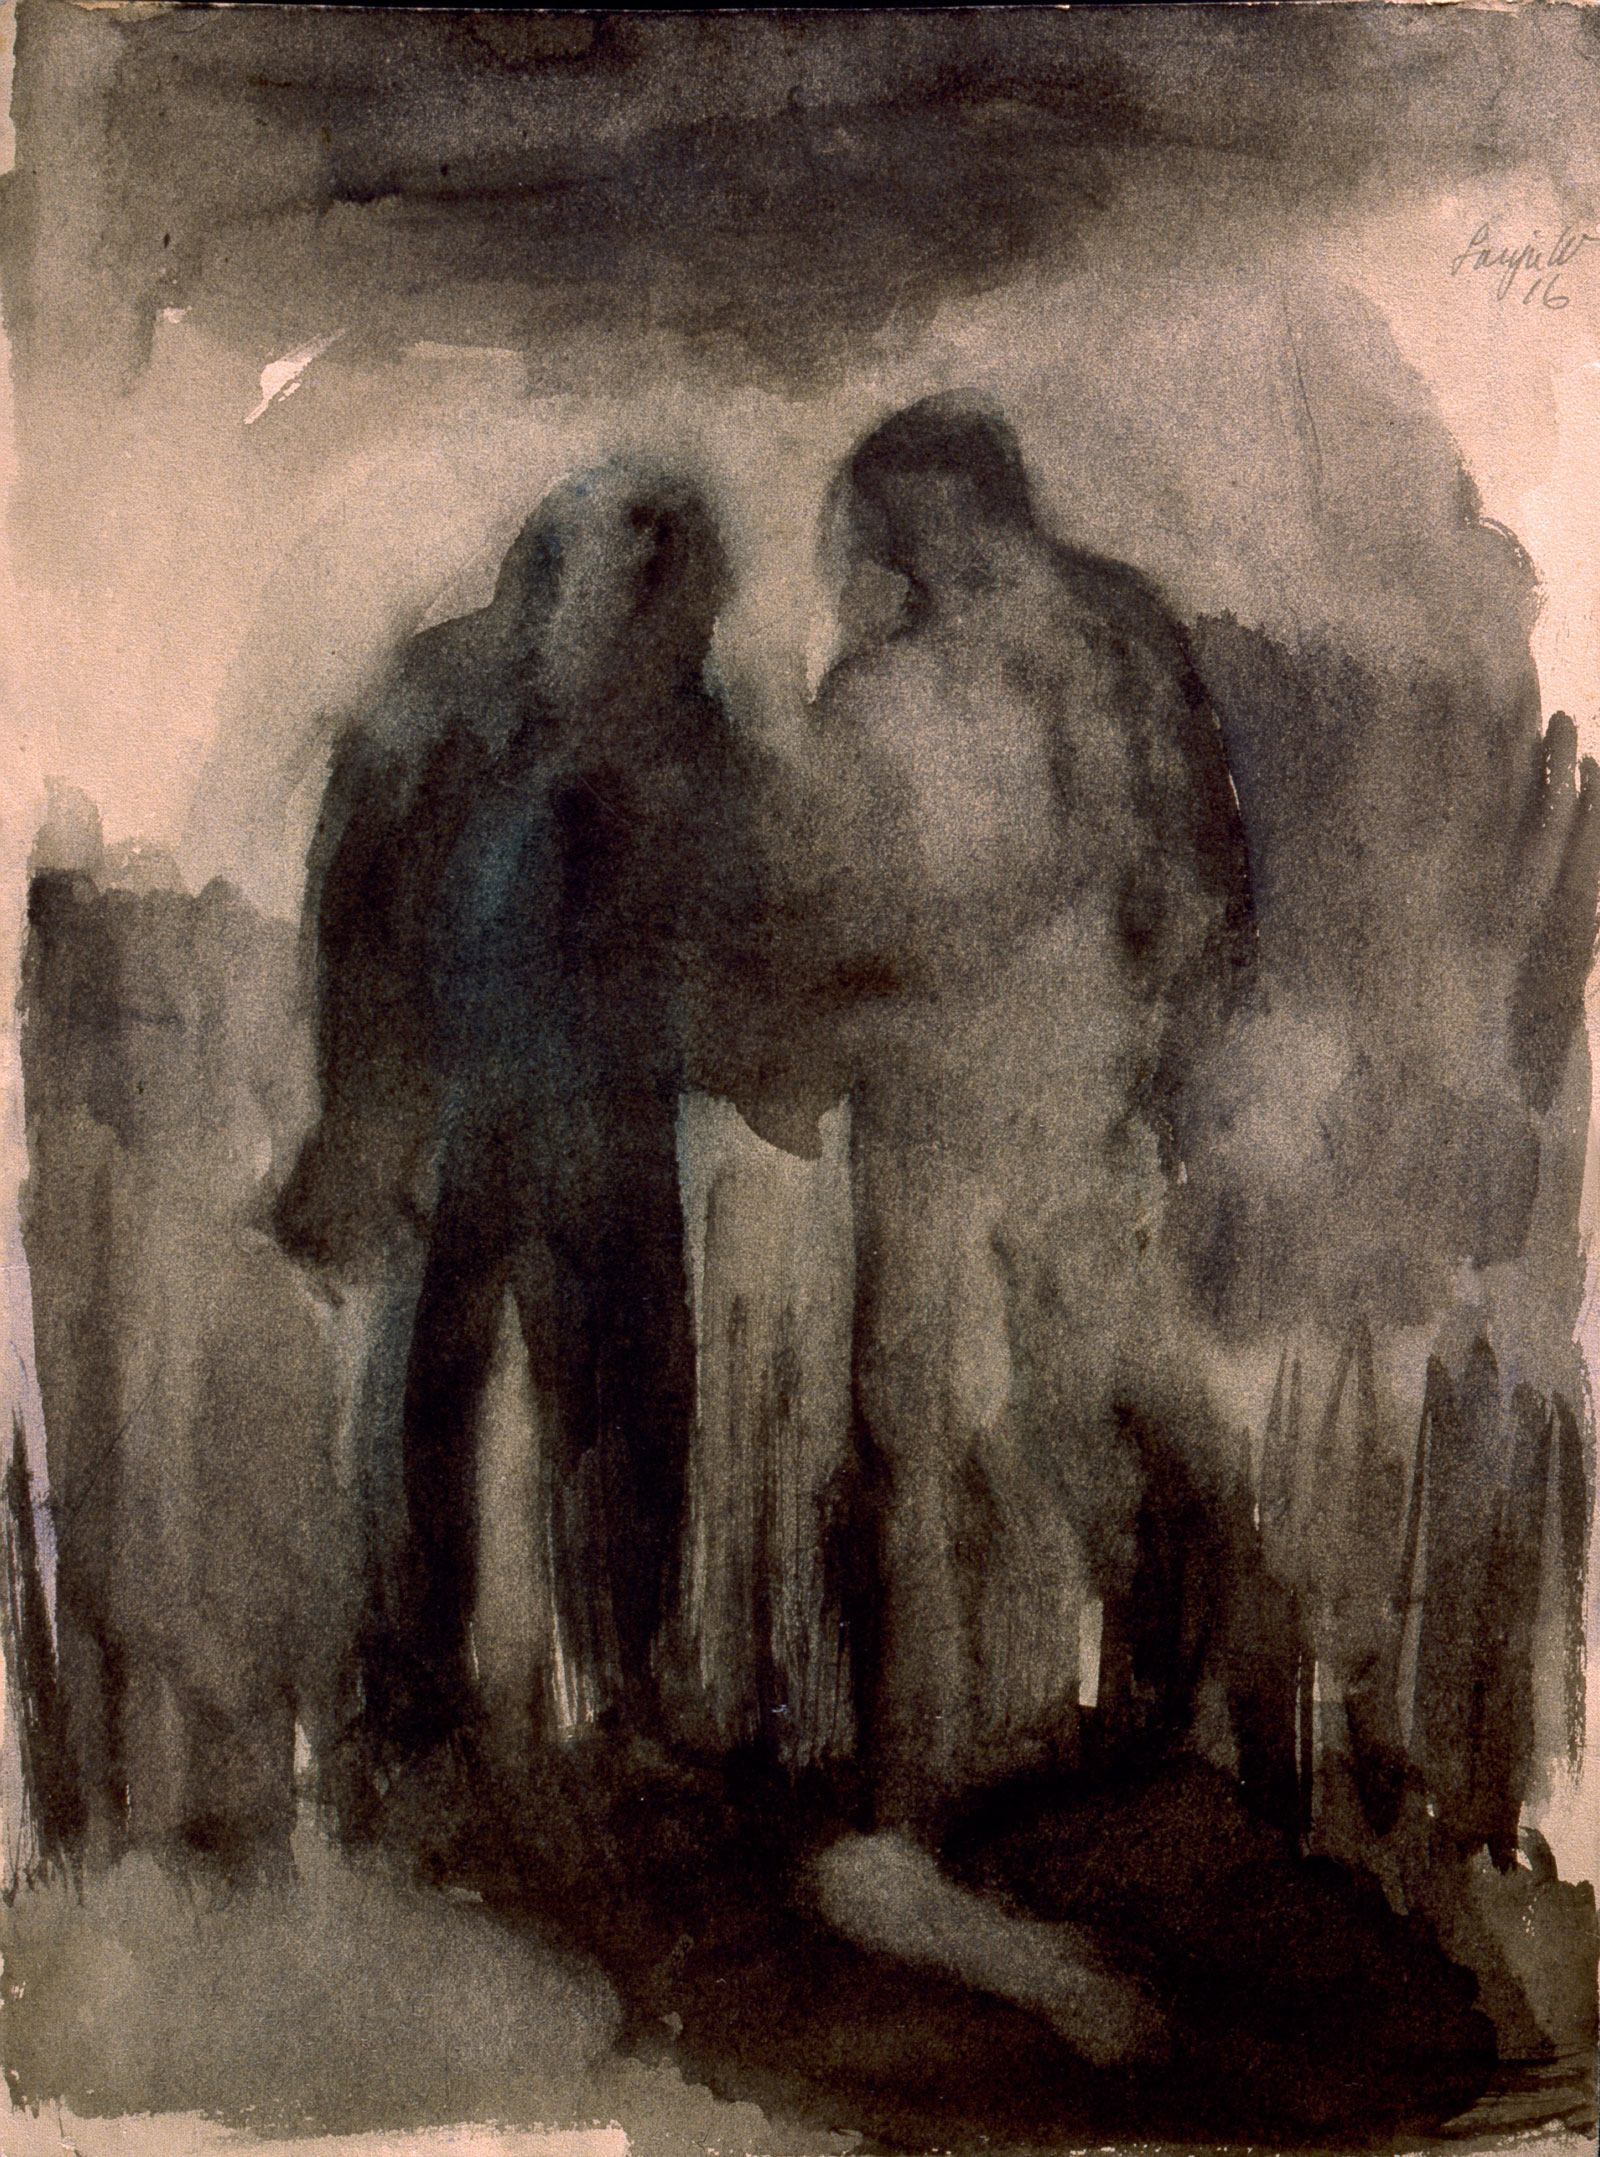 Drawing by Sonja Waldsteinová during her captivity in Terezín concentration camp; Waldsteinová, who survived, was sixteen when she was interned in March 1943